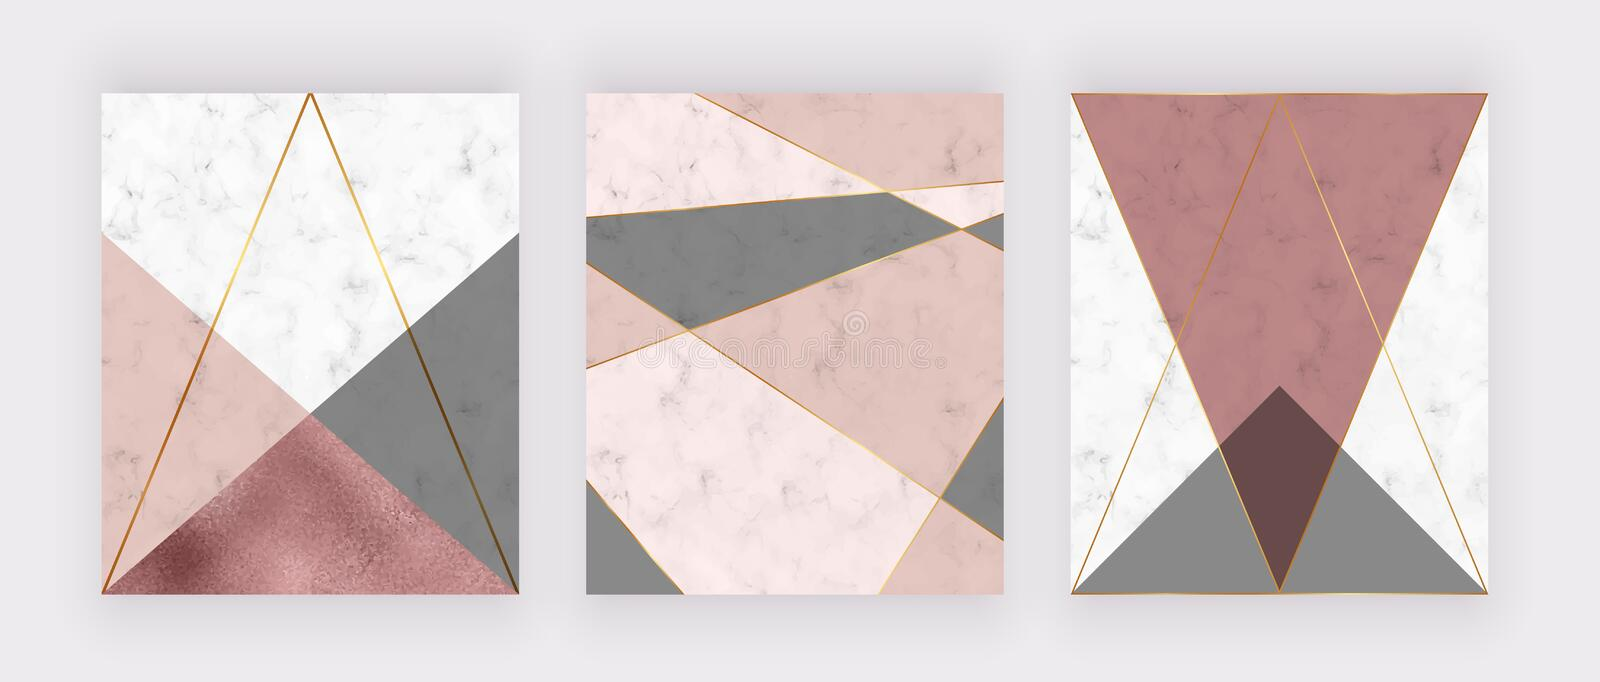 Marble geometric design with pink and grey triangular, rose gold foil texture, polygonal lines. Modern background for wedding invi royalty free illustration